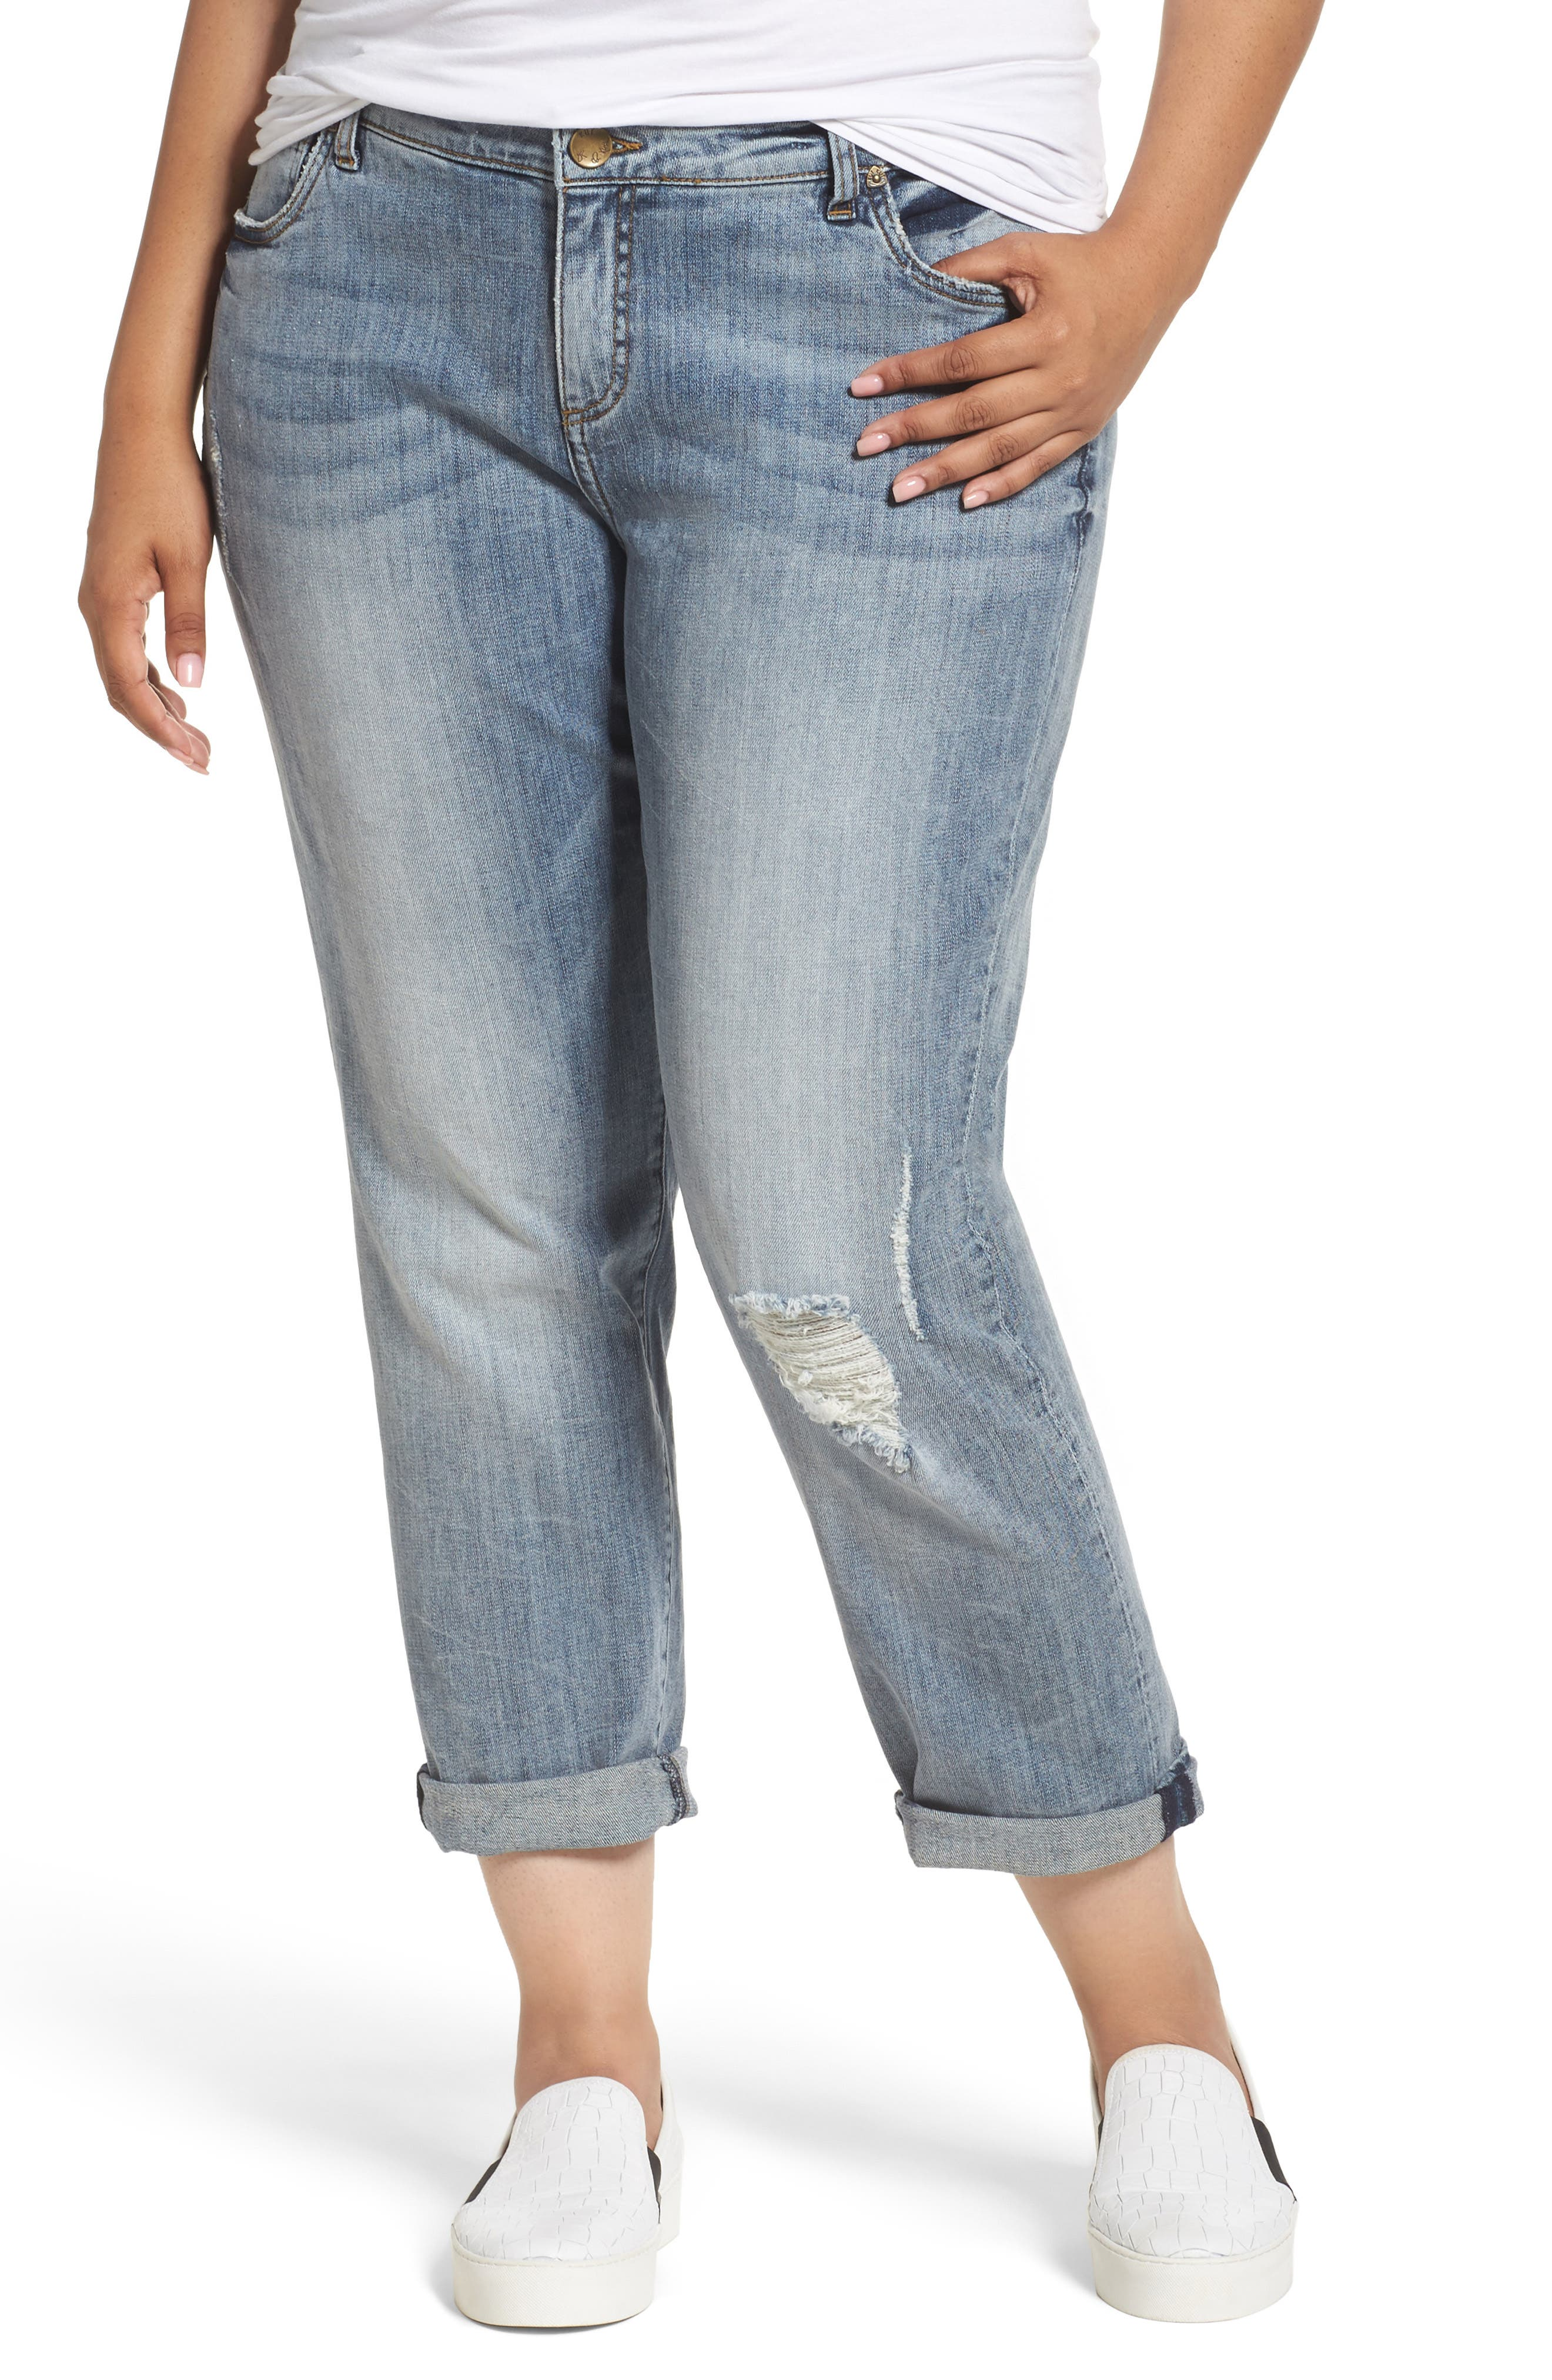 Main Image - KUT from the Kloth Catherine Stretch Distressed Boyfriend Jeans (Regarded) (Plus Size)